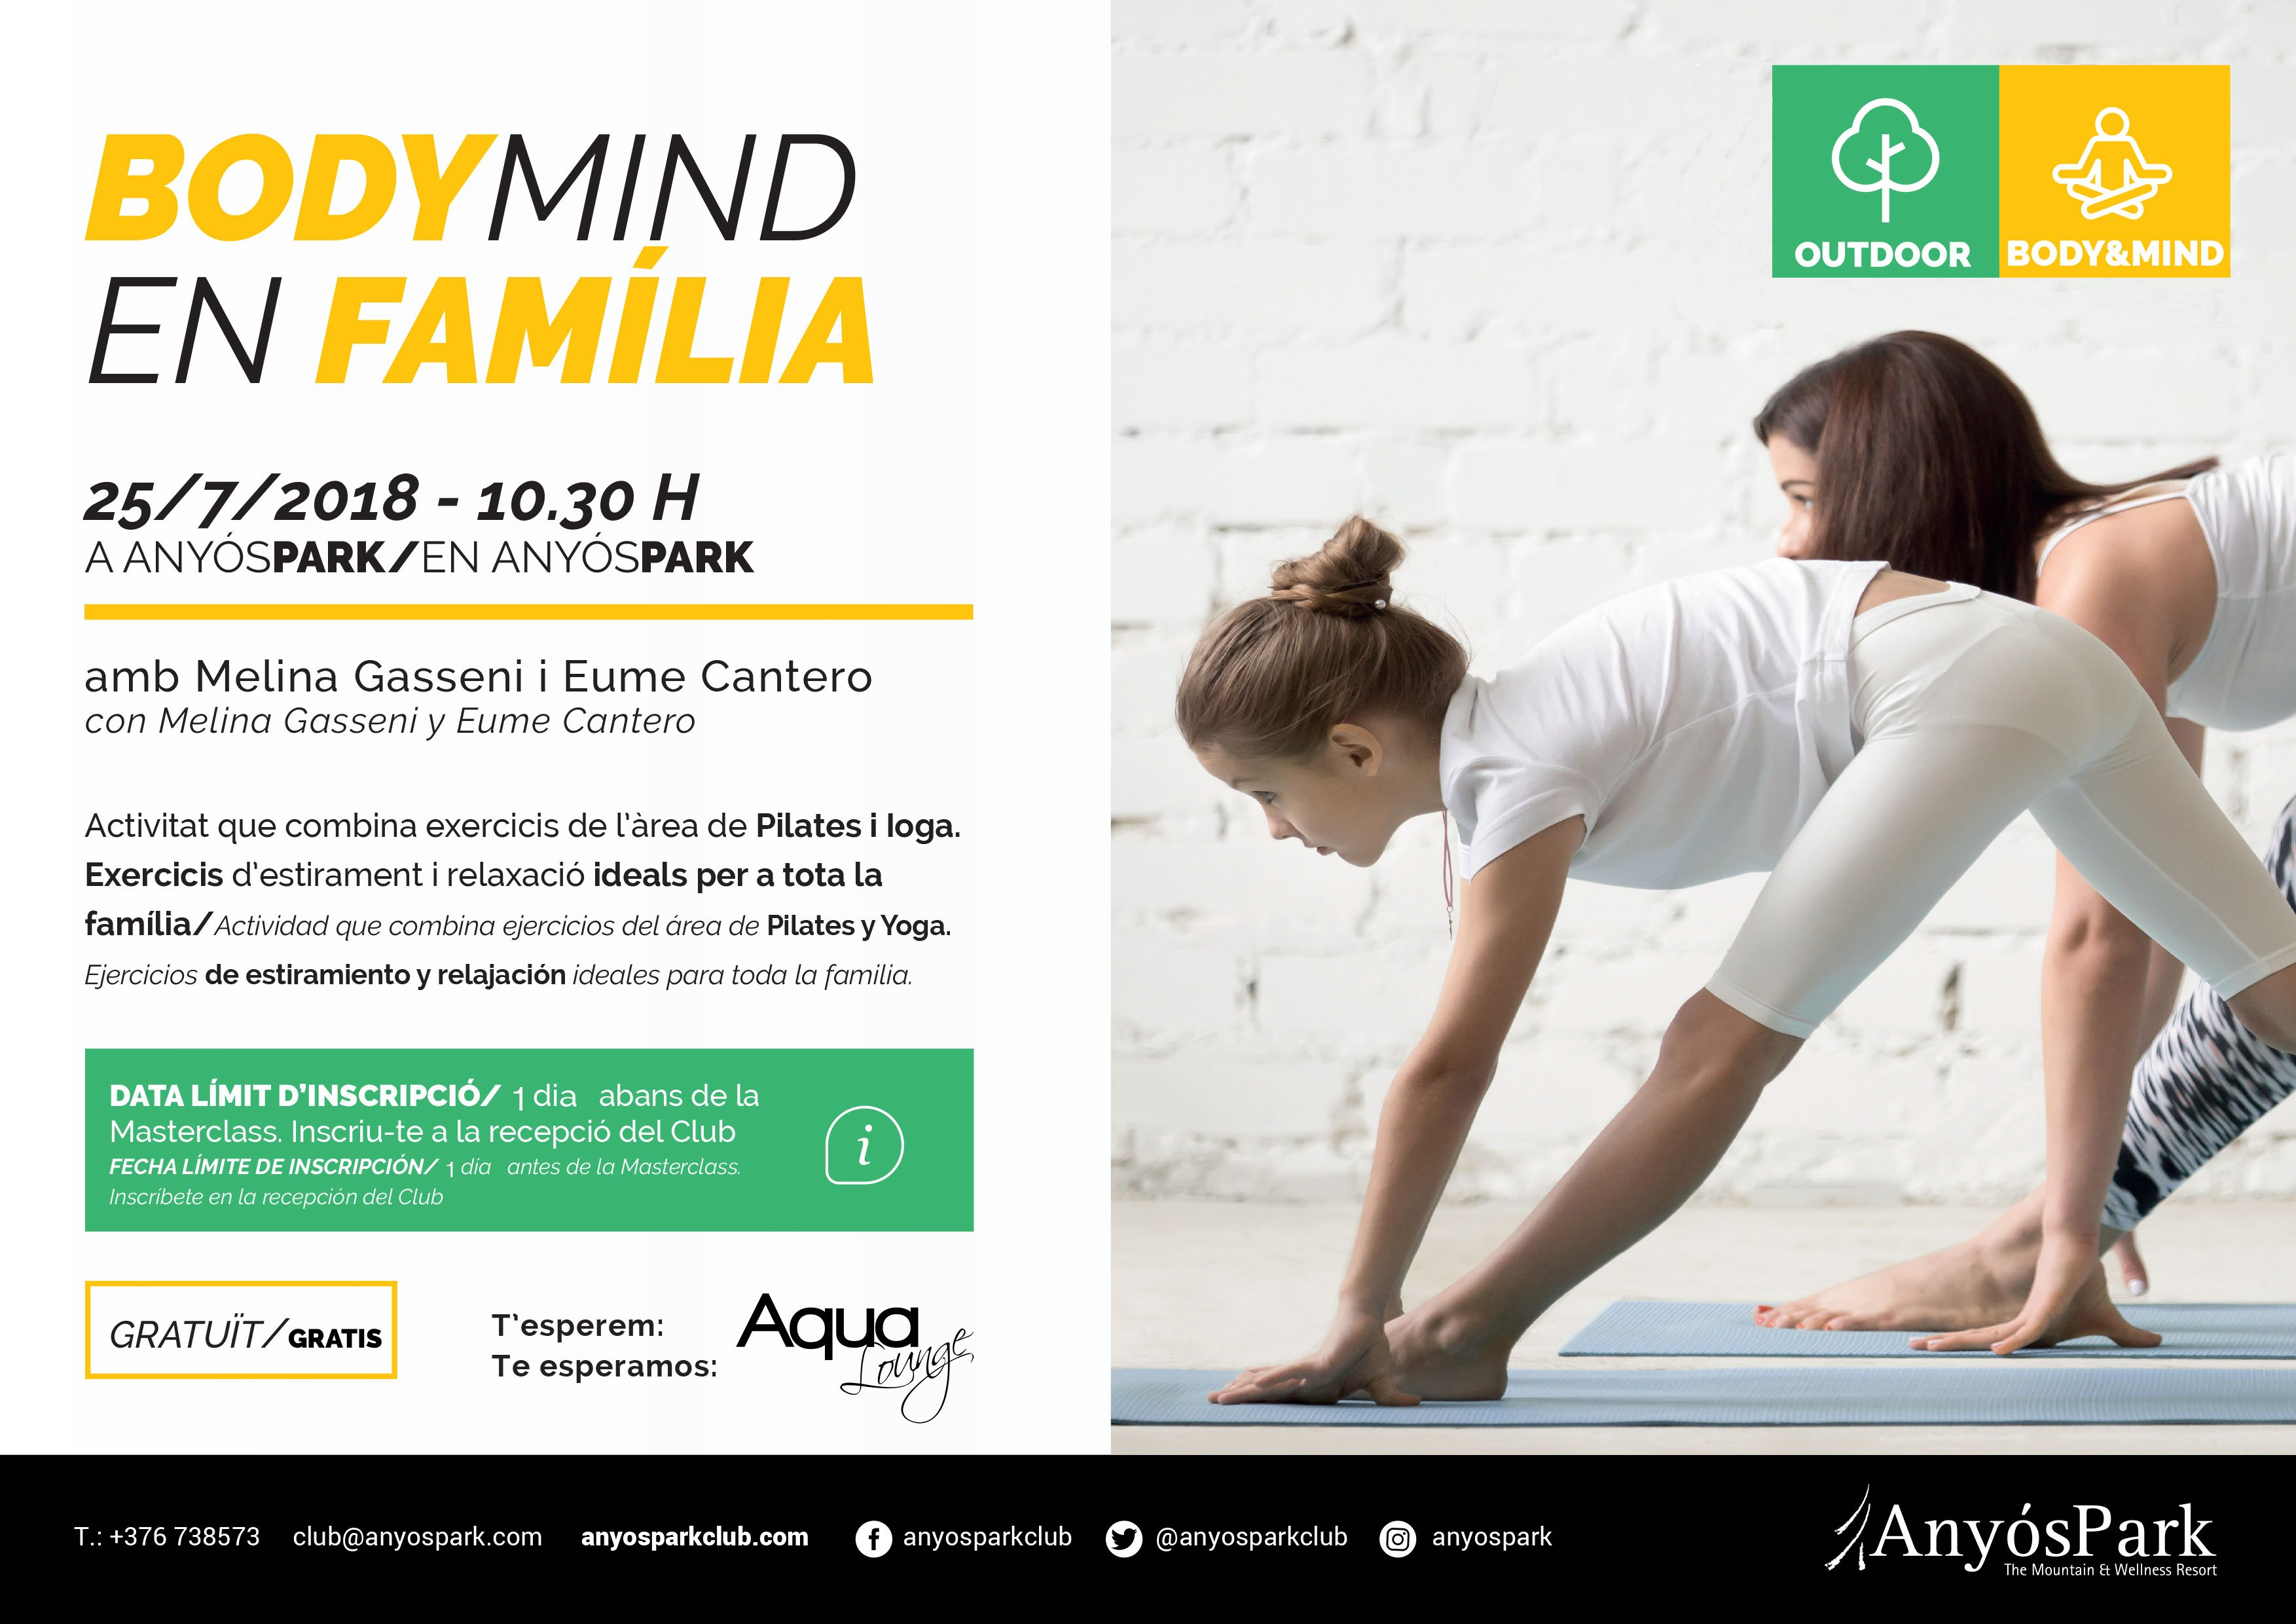 BODY & MIND EN FAMILIA